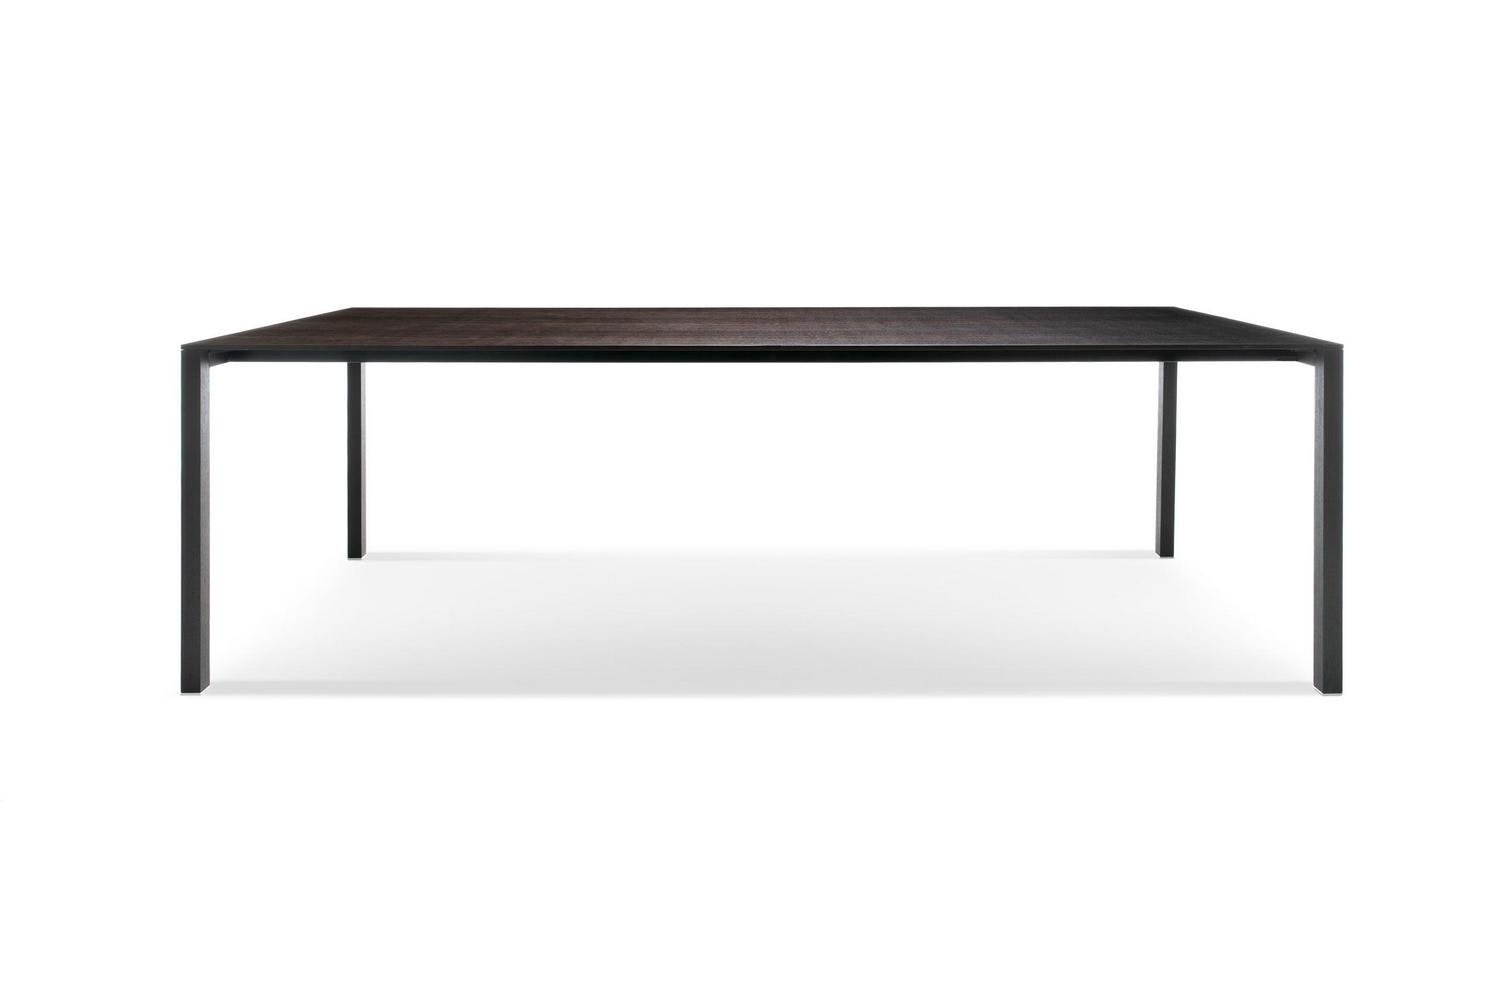 195 Naan Table by Piero Lissoni for Cassina